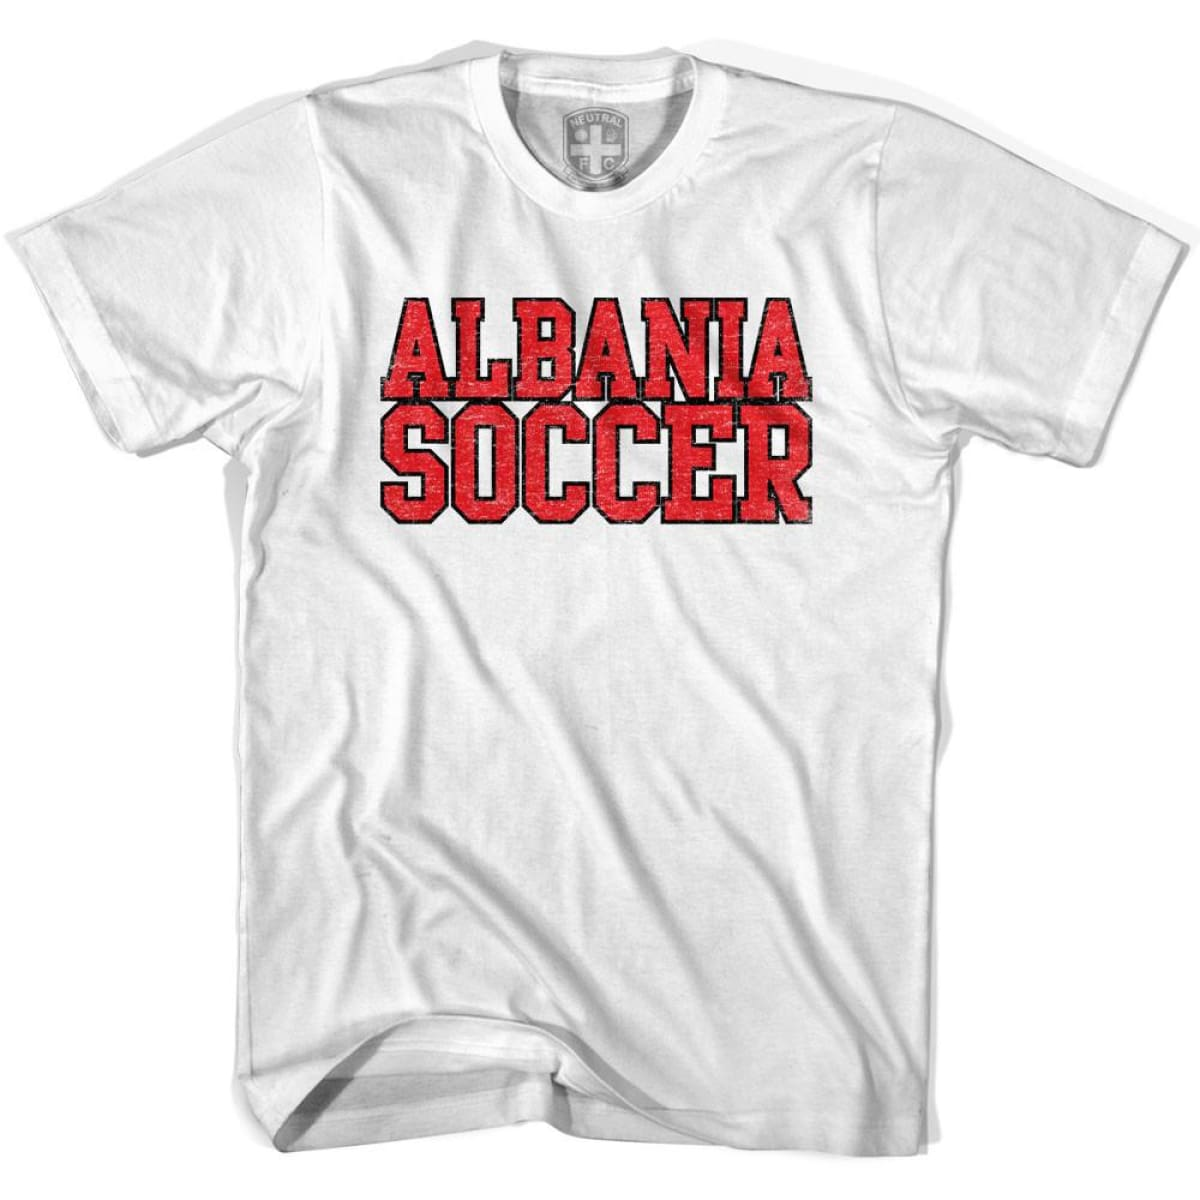 Albania Soccer Nations World Cup T-shirt - White / Youth X-Small - Ultras Soccer T-shirts